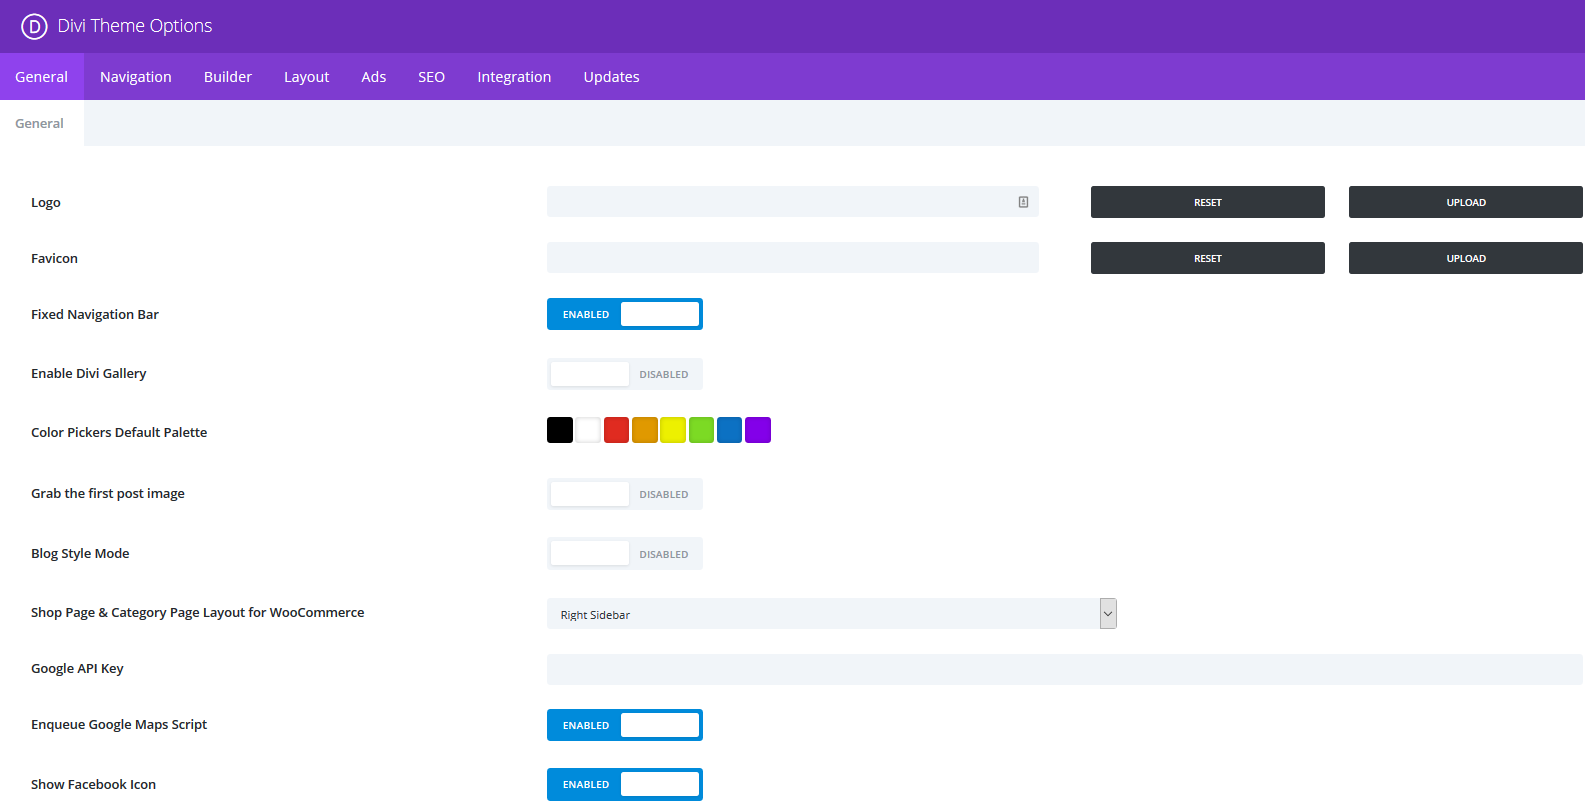 The Divi Theme Settings